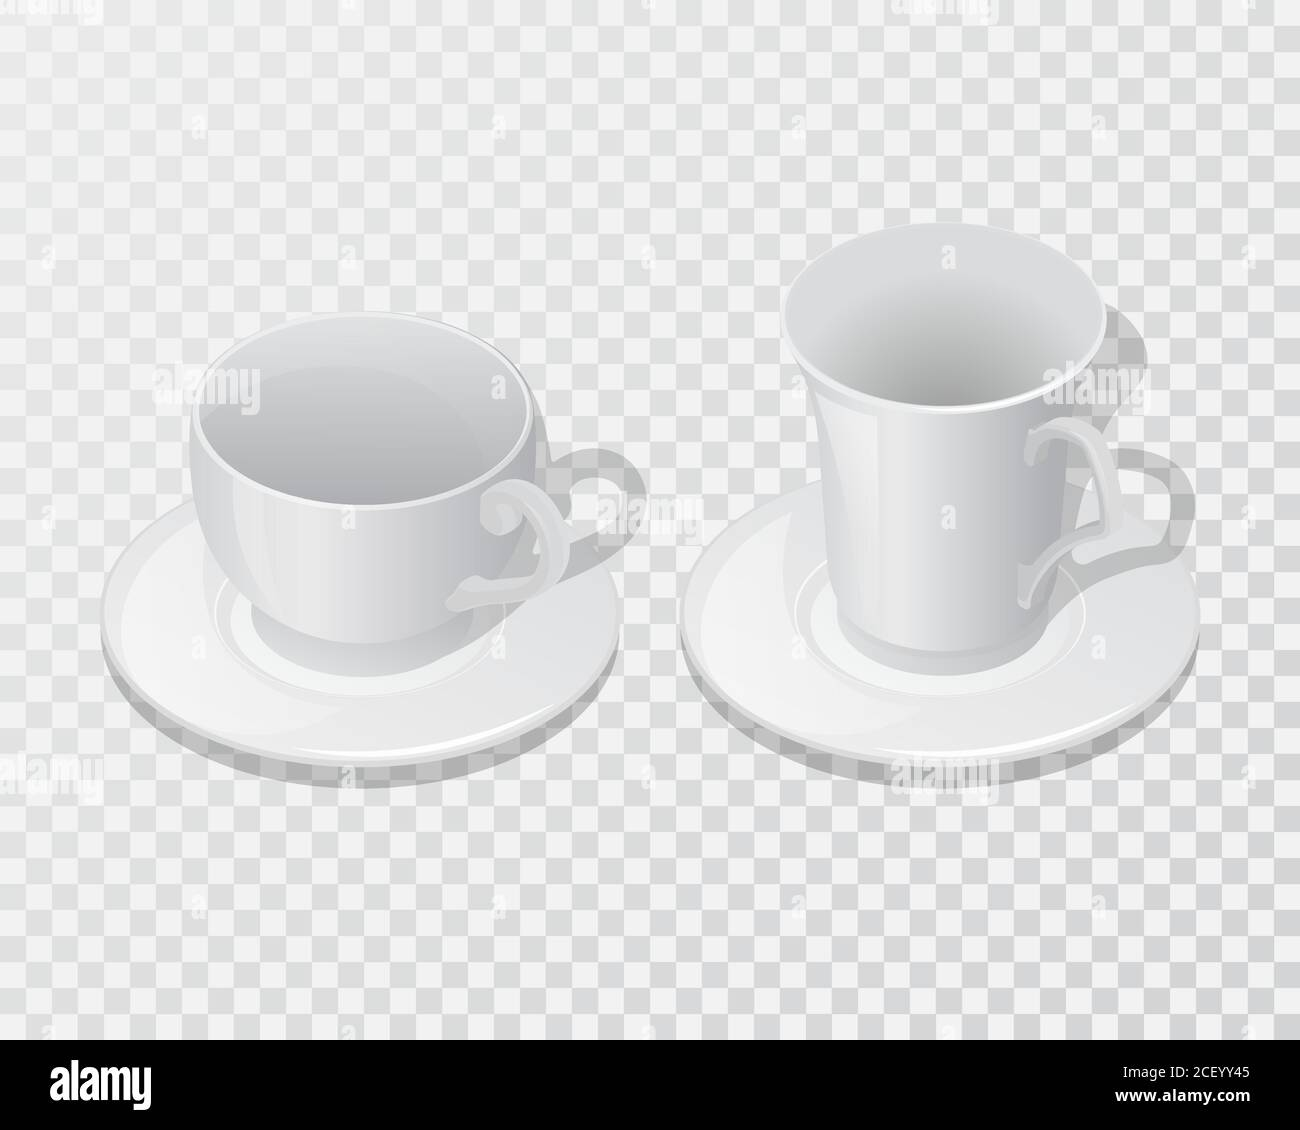 Set Of Ceramic Dishes For Drinks Cups With Saucer On A Transparent Isolated Background Mock Up Template For Design 3d Isometry Vector Illustration Stock Vector Image Art Alamy